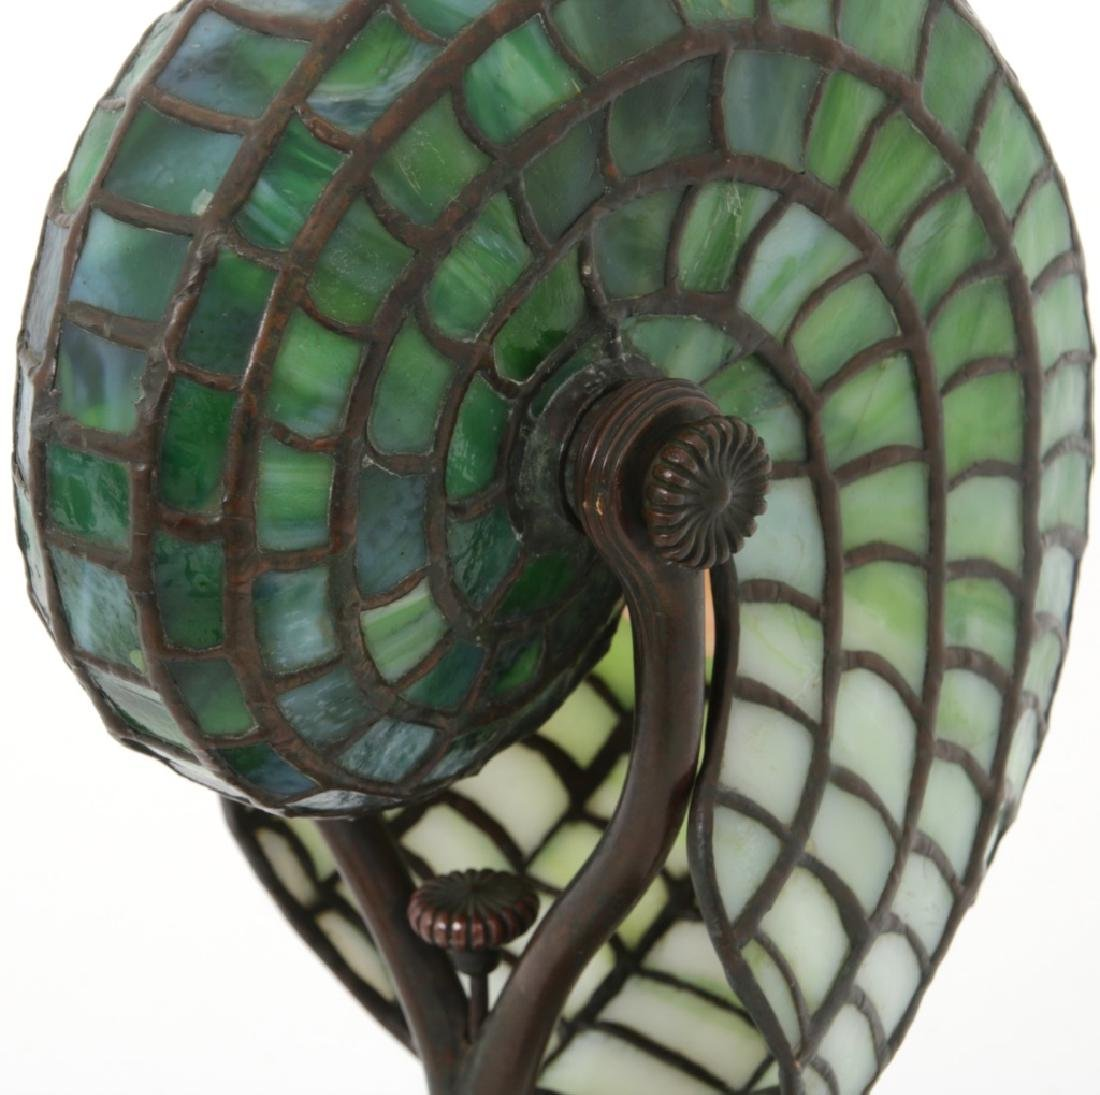 Tiffany Studios Leaded Nautilus Desk Lamp - 10